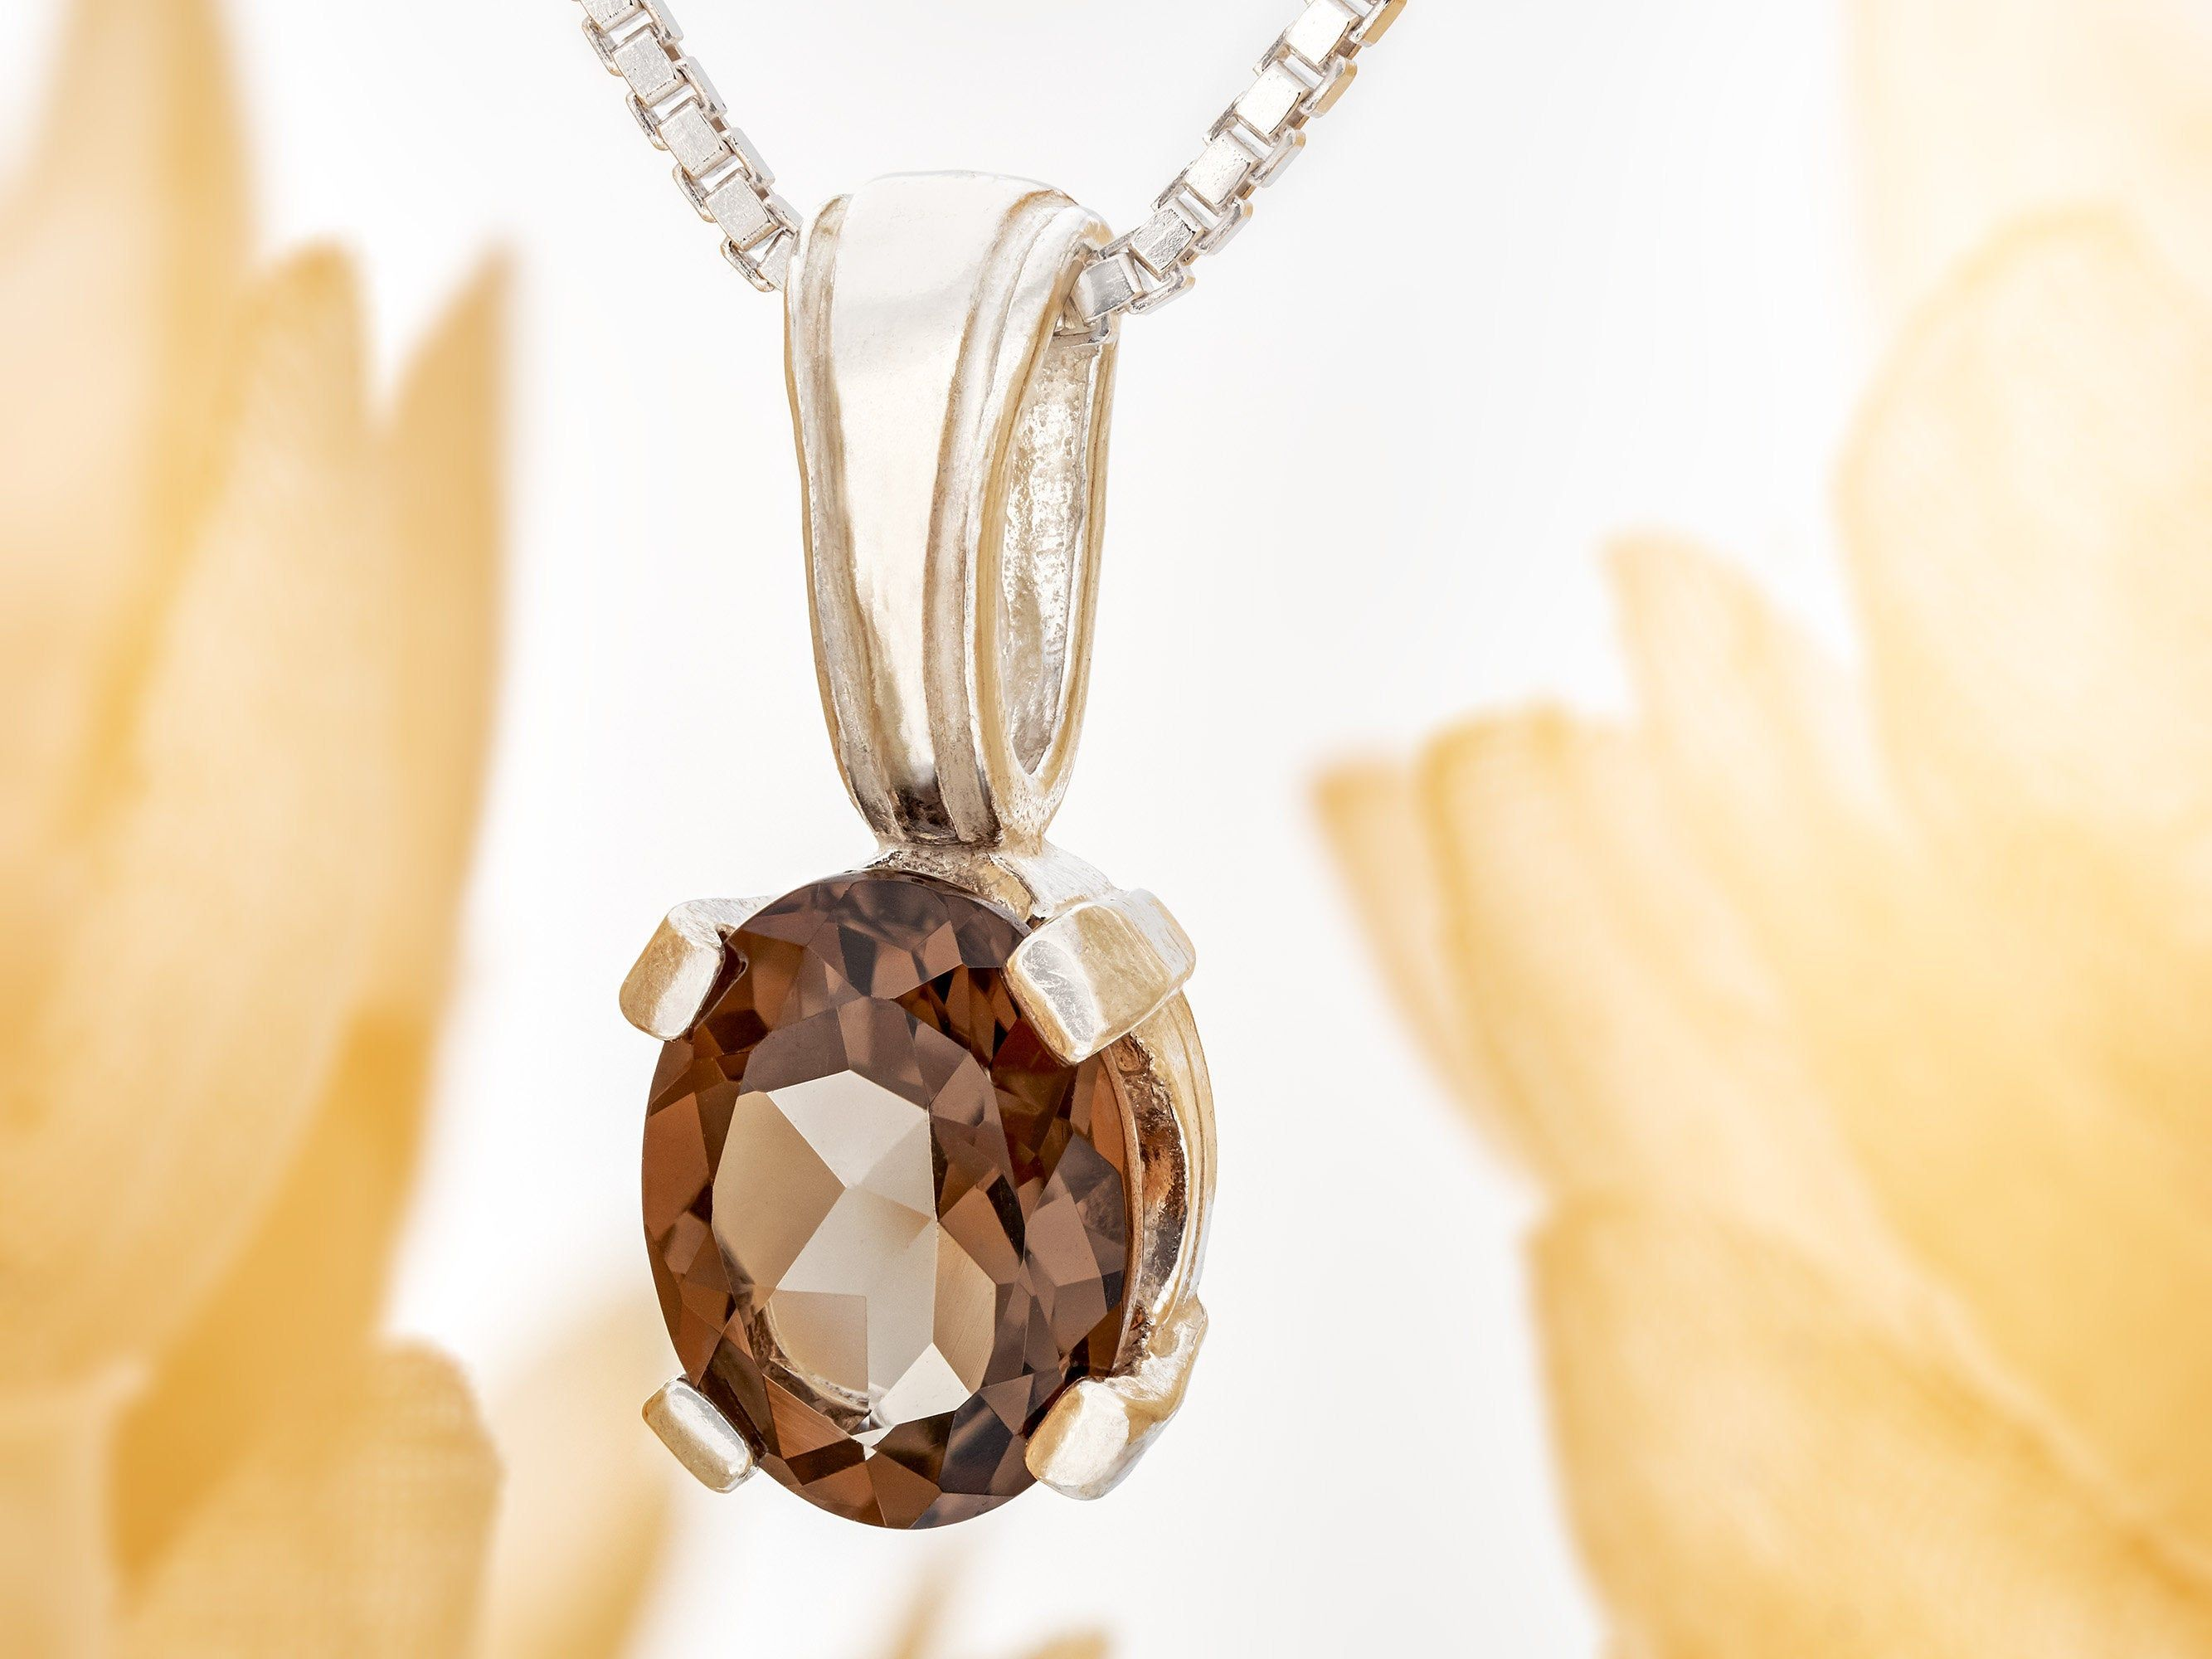 Smoky Quartz necklace from Brazil! 8x6mm oval, natural, medium Grade AA brown Brazilian gemstone in a 6-Prong, Silver Pendant. Chain Options